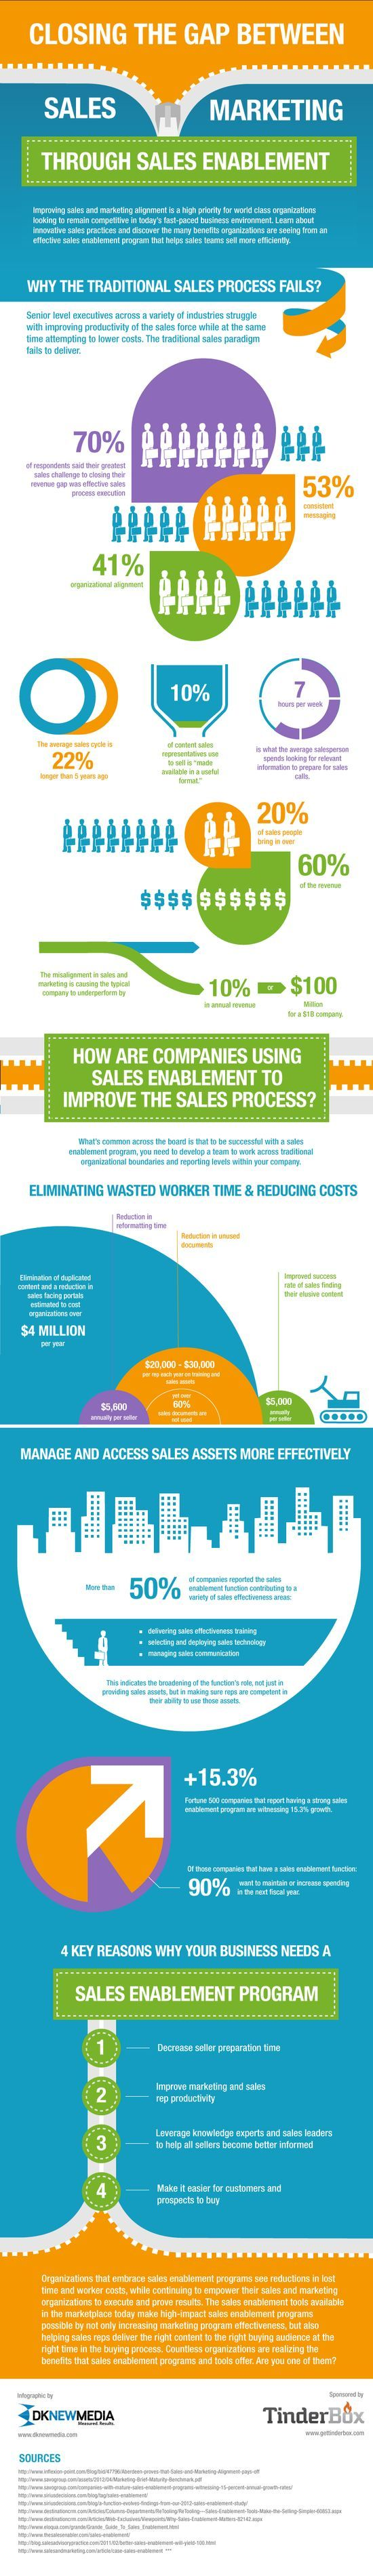 Four Reasons Why Organizations Need a Sales Enablement Program ...